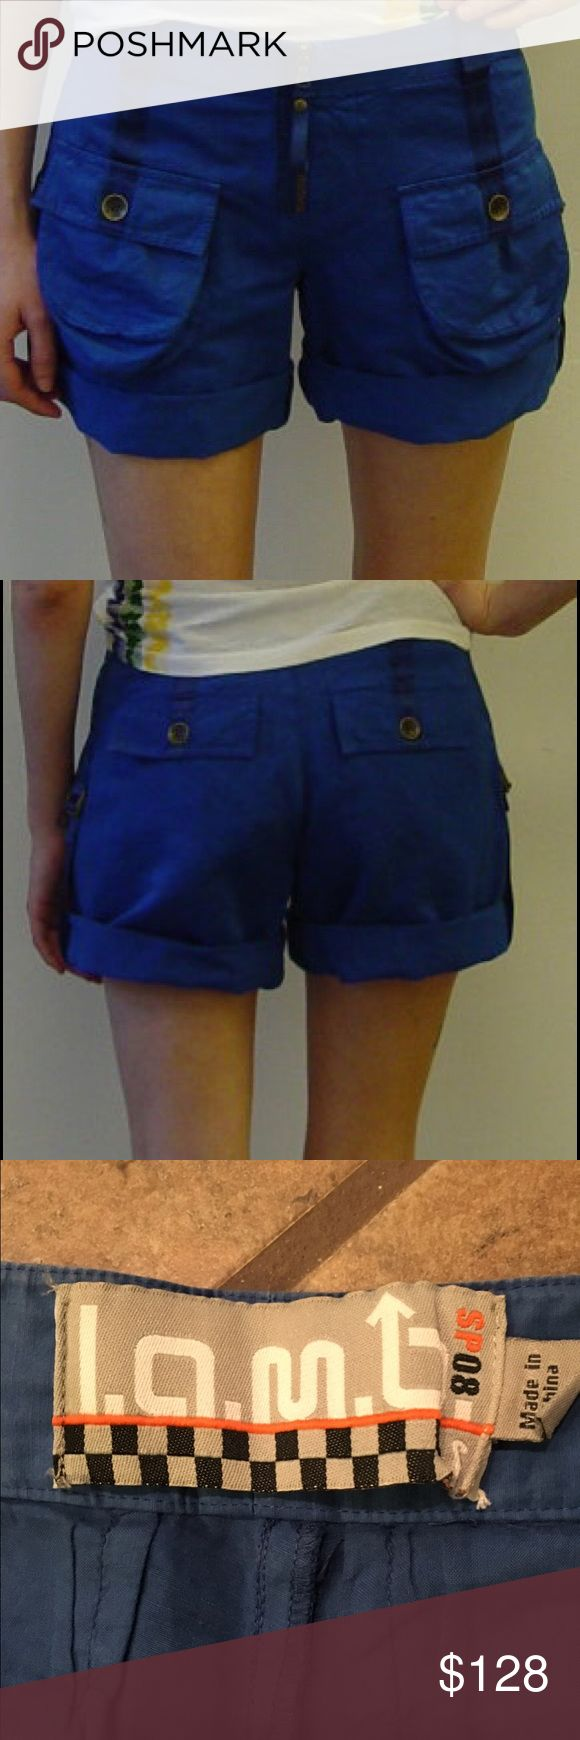 LAMB blue flight shorts size 6 Cute shorts! From Gwen Stefani's L.A.M.B (Love Angel Music Baby) fashion line. Size 6. Good condition. One of the back pocket buttons is coming a little loose. If I can find my sewing kit before purchase, I'll secure it so it's not loose anymore. Open to offers. I do bundle discounts. See my closet for more Gwen Stefani items (Harajuku Lovers, Gx, etc...) as well as Free People, One Teaspoon, Urban Outfitters, Lululemon, and more! :) No trades. L.A.M.B. Shorts